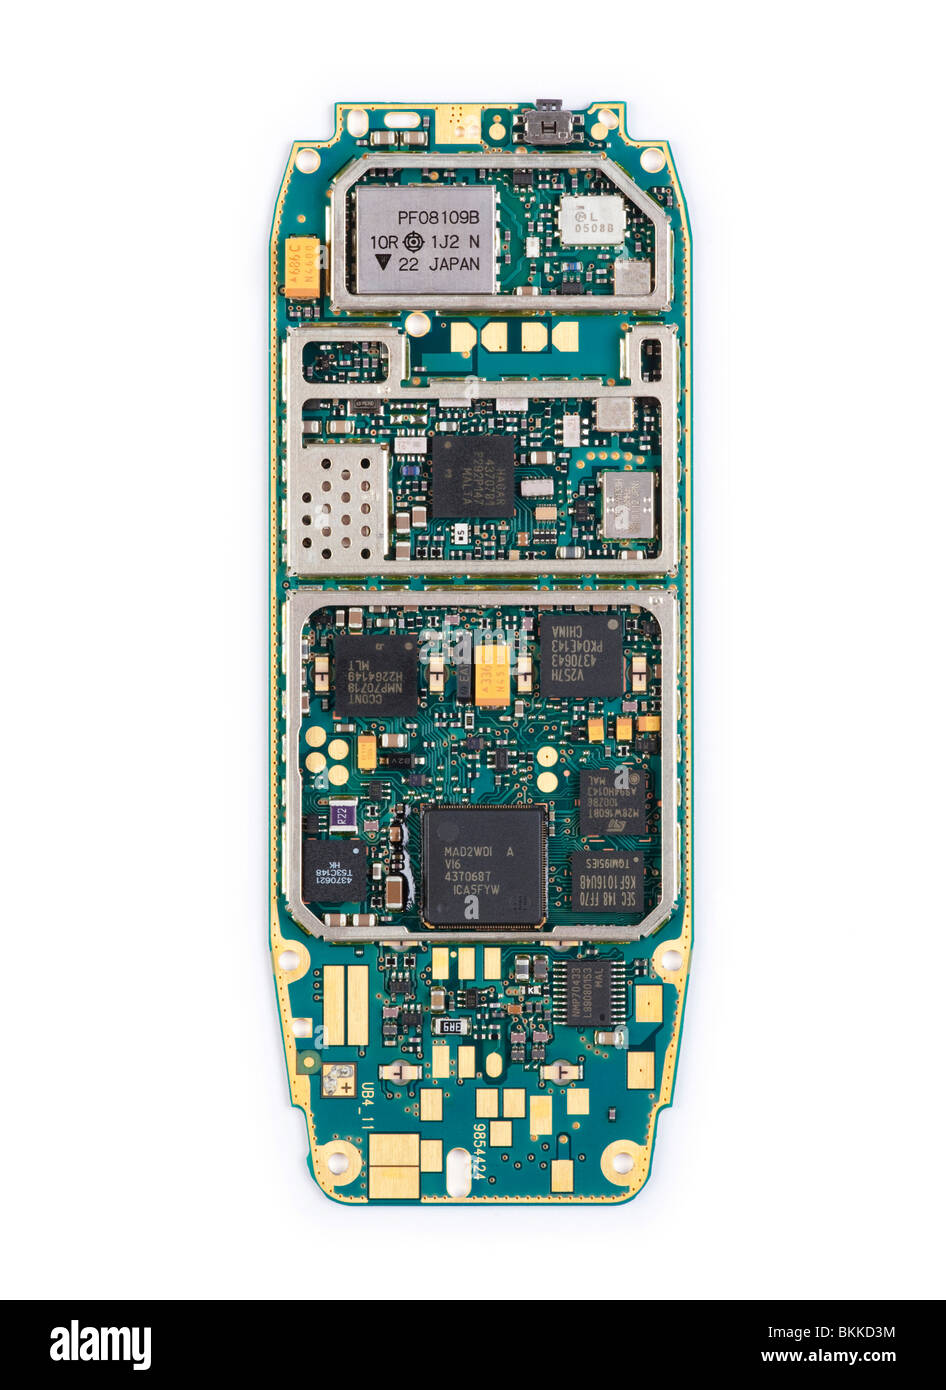 Circuit Board Of A Cell Phone Royalty Free Stock Image Miniaturization Cut Out Images Pictures Alamy From Nokia 3310 Mobile